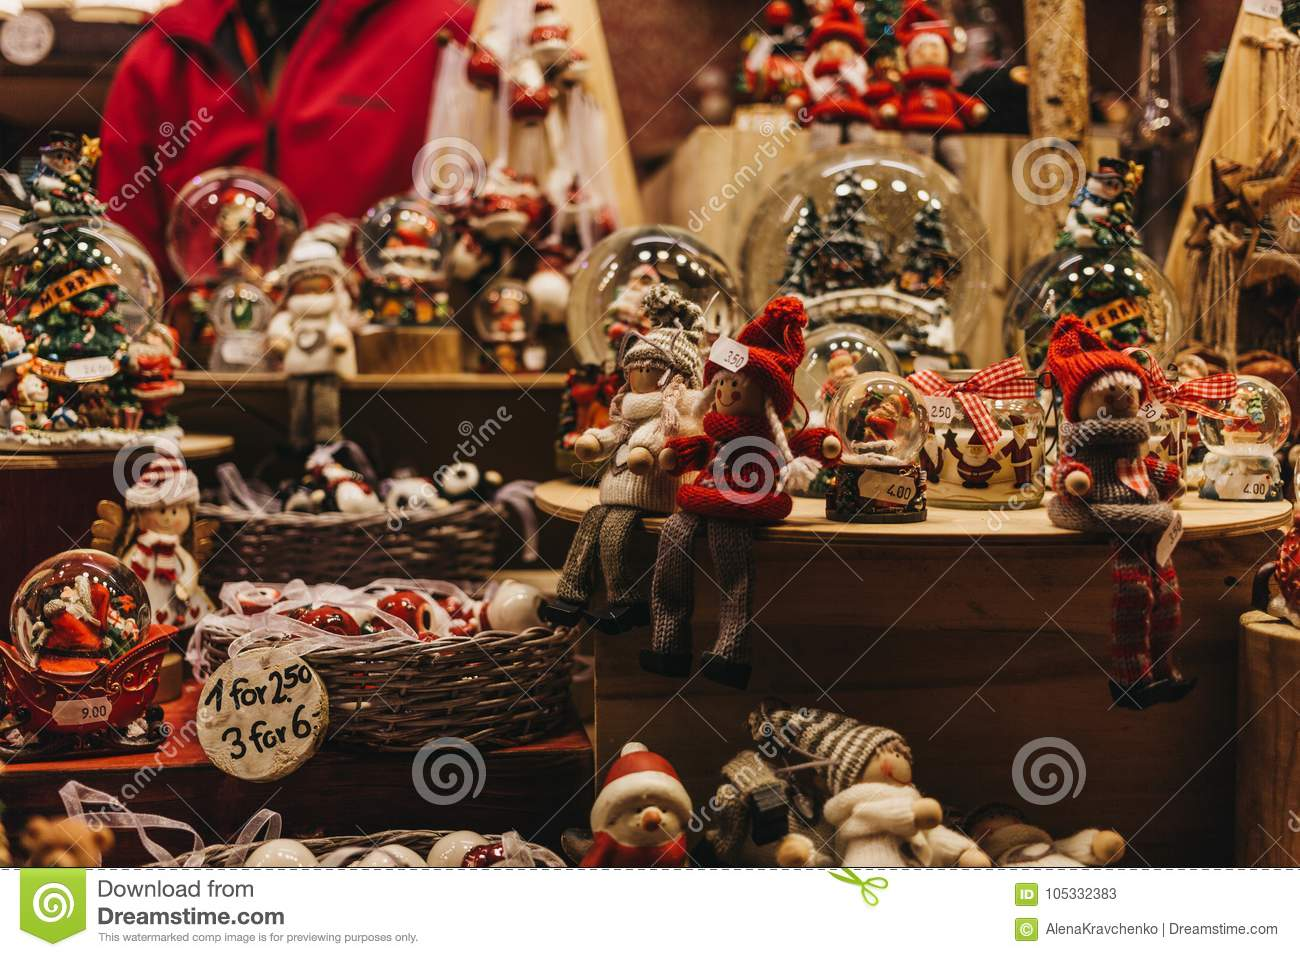 download christmas and christmas tree decorations on sale at a stall in winter wonderland annual - Christmas Tree Decorations Sale